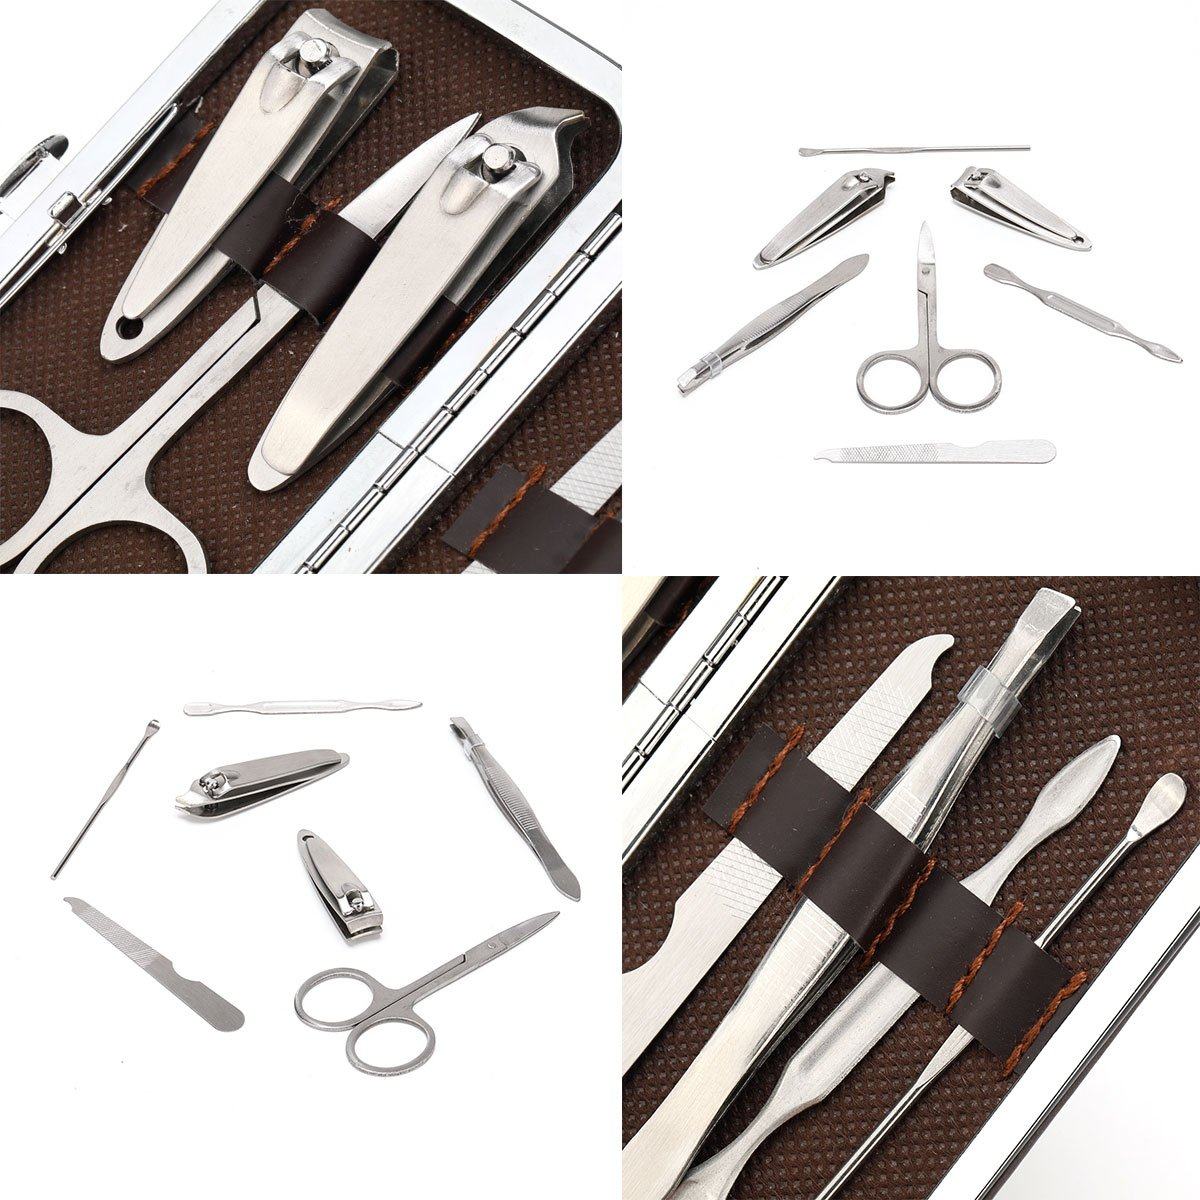 Manicure Pedicure Set 7 Pieces Nail clippers,Stainless Steel Manicure Pedicure Kits with Carrying Case